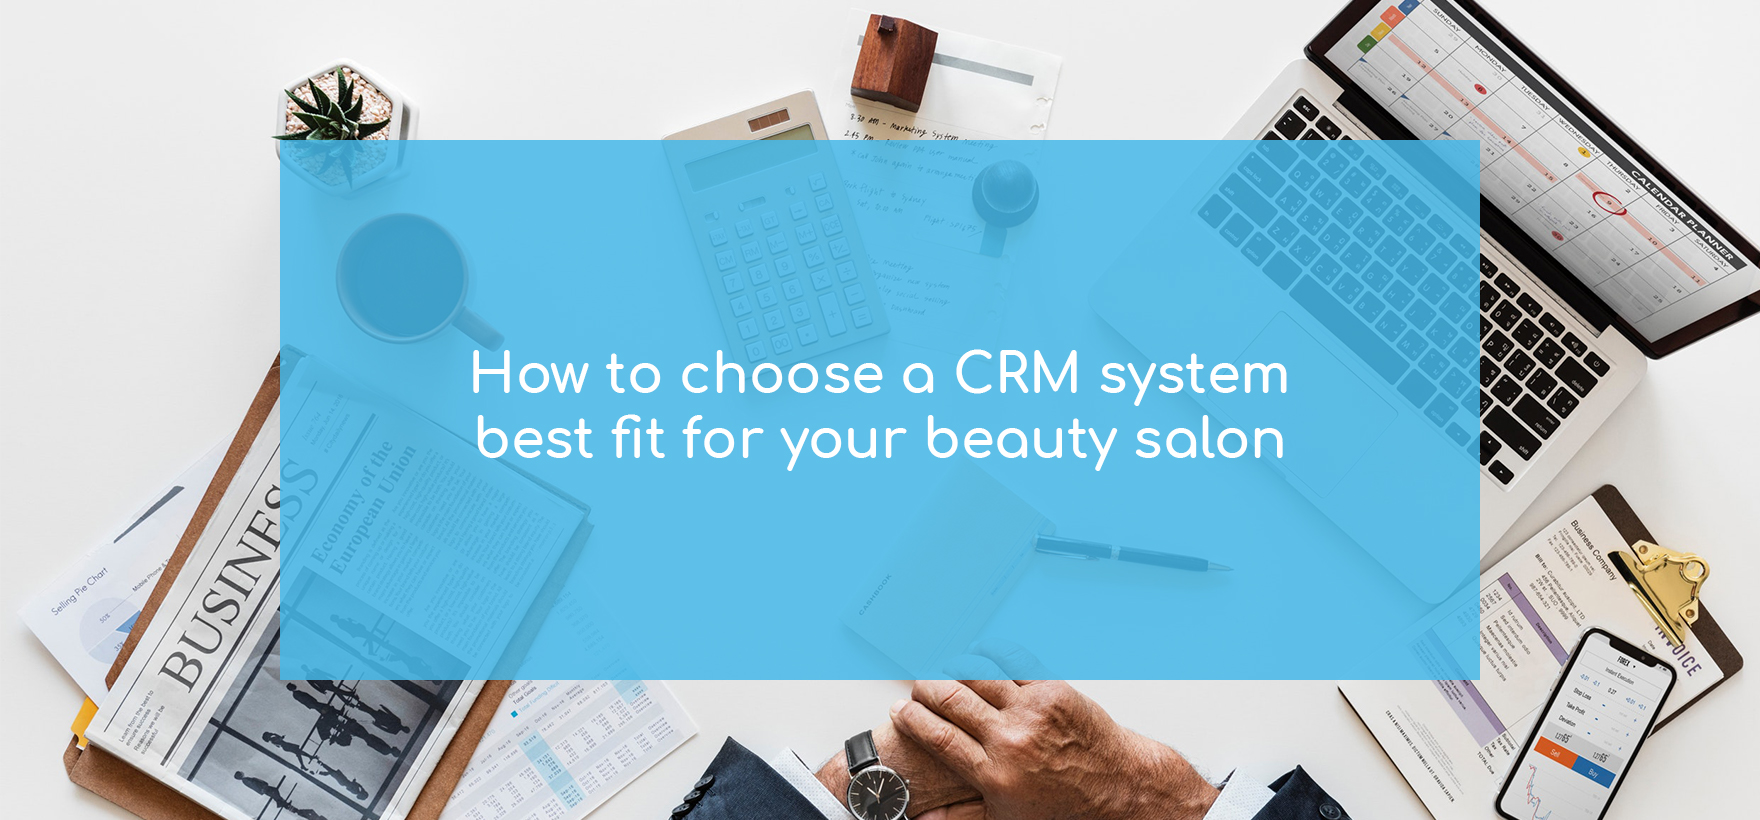 How to choose a CRM system best fit for your beauty salon